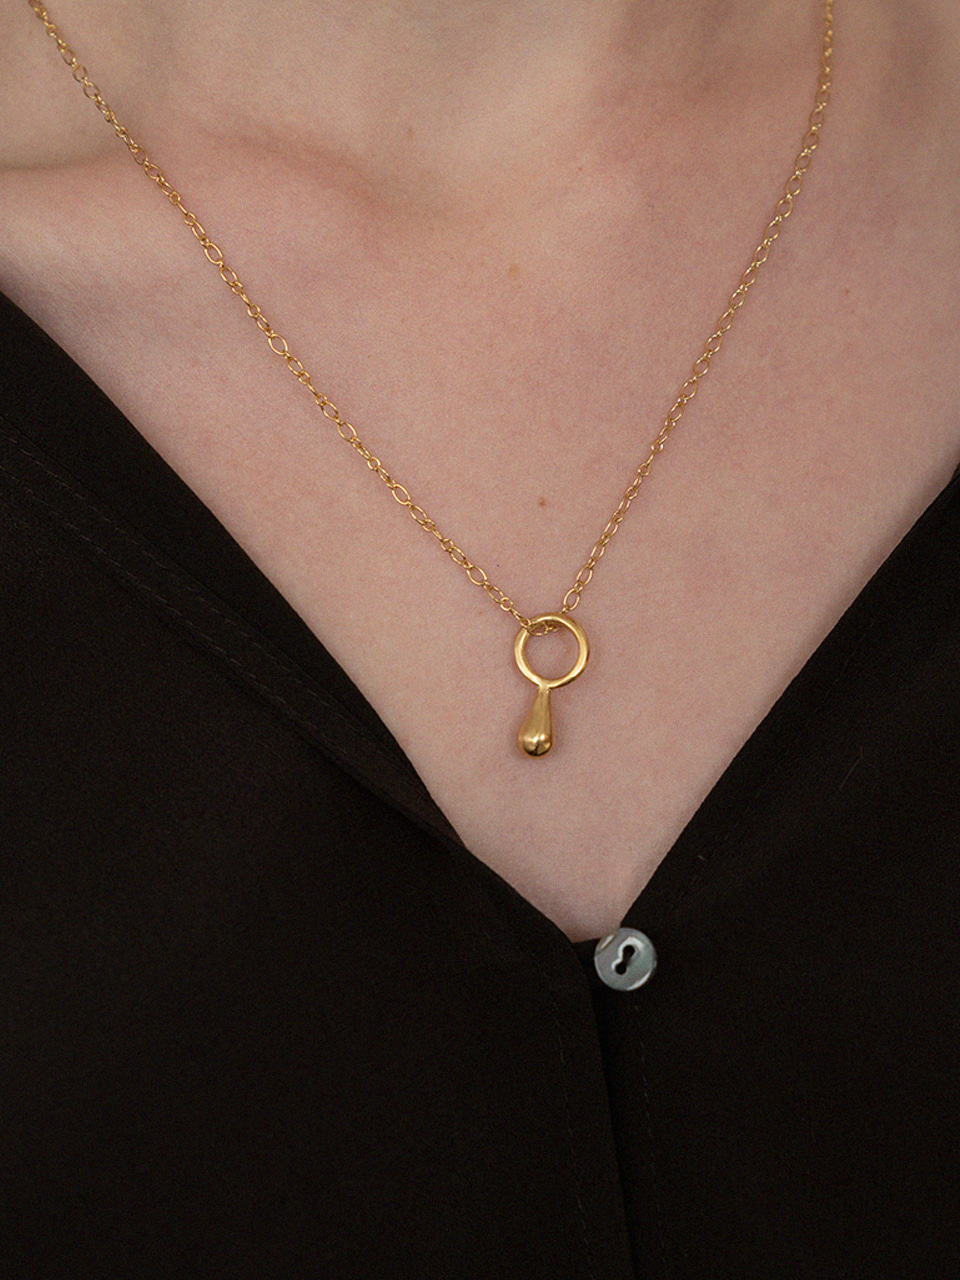 Loop bulb necklace